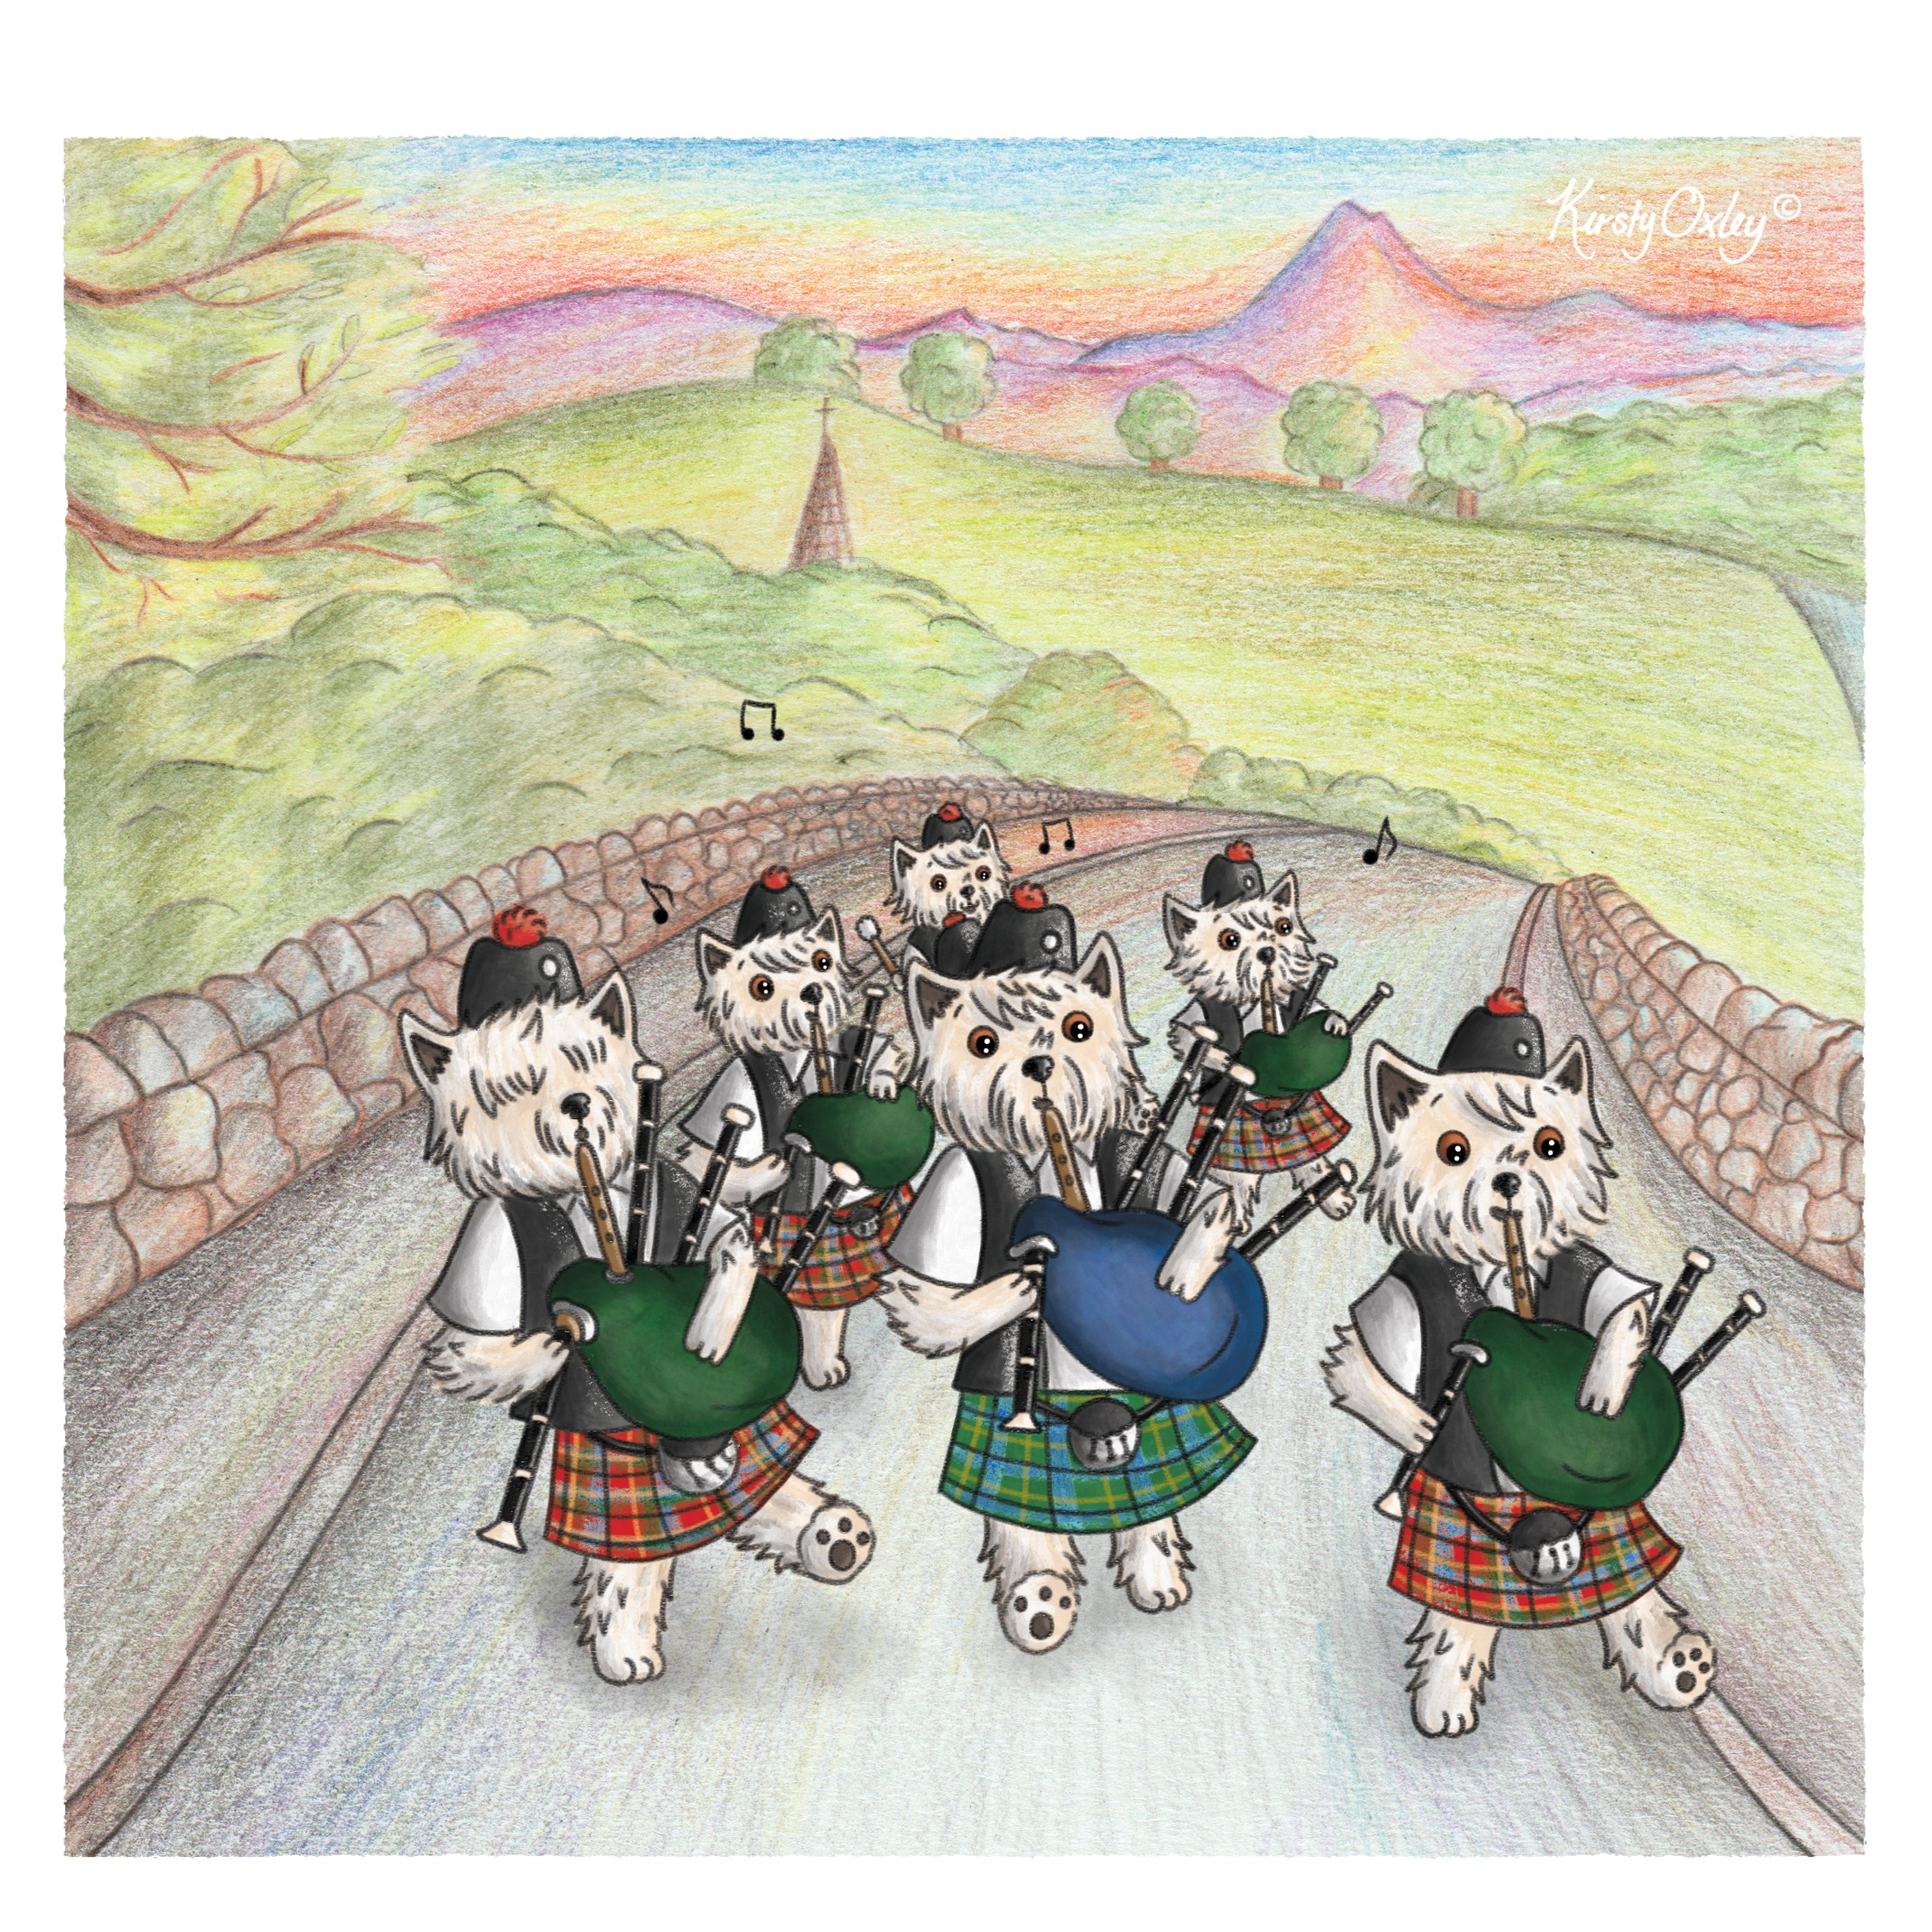 Bagpipe_Parade_Kirsty_Oxley_Illustration.jpg